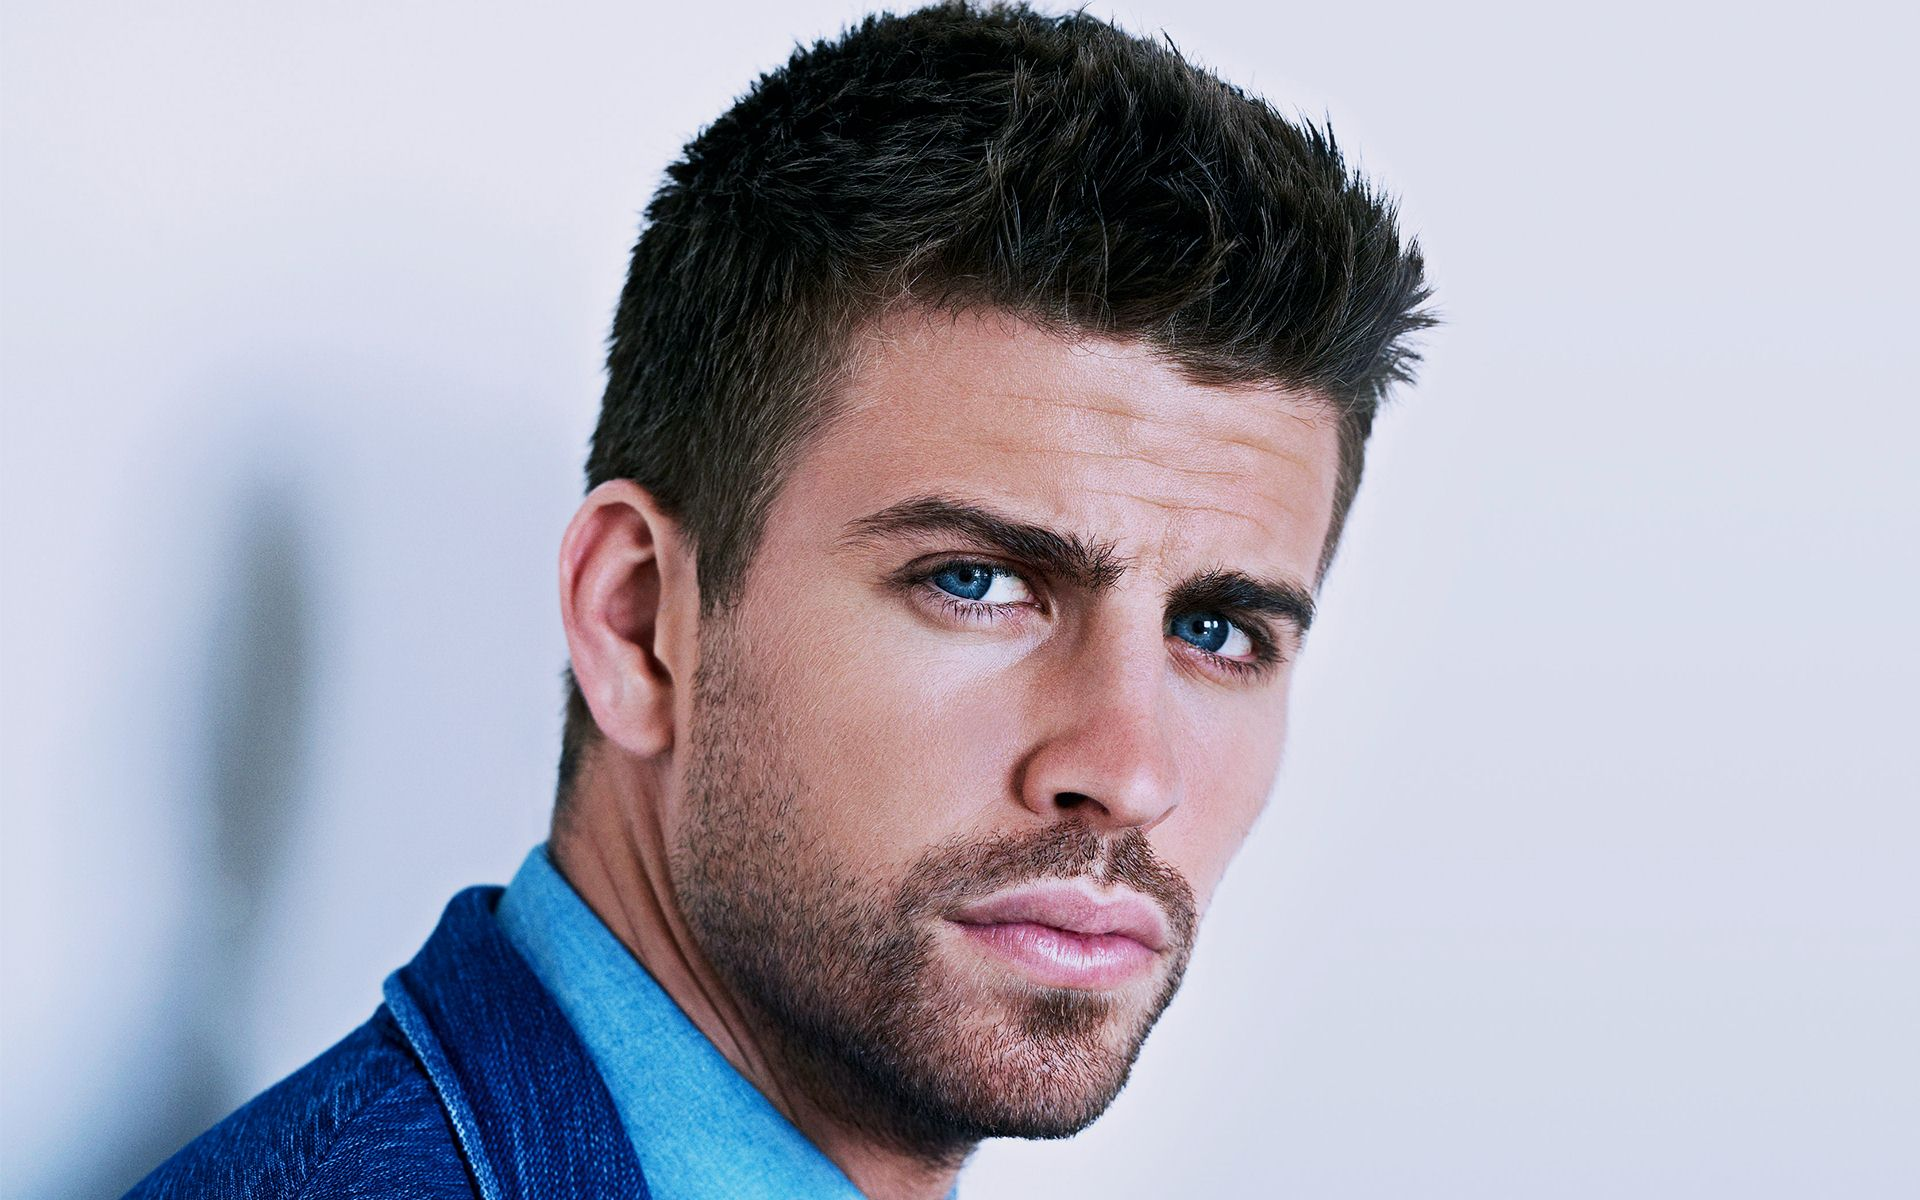 Gerard Piqué Net worth Salary House Car Wife & Family 2017